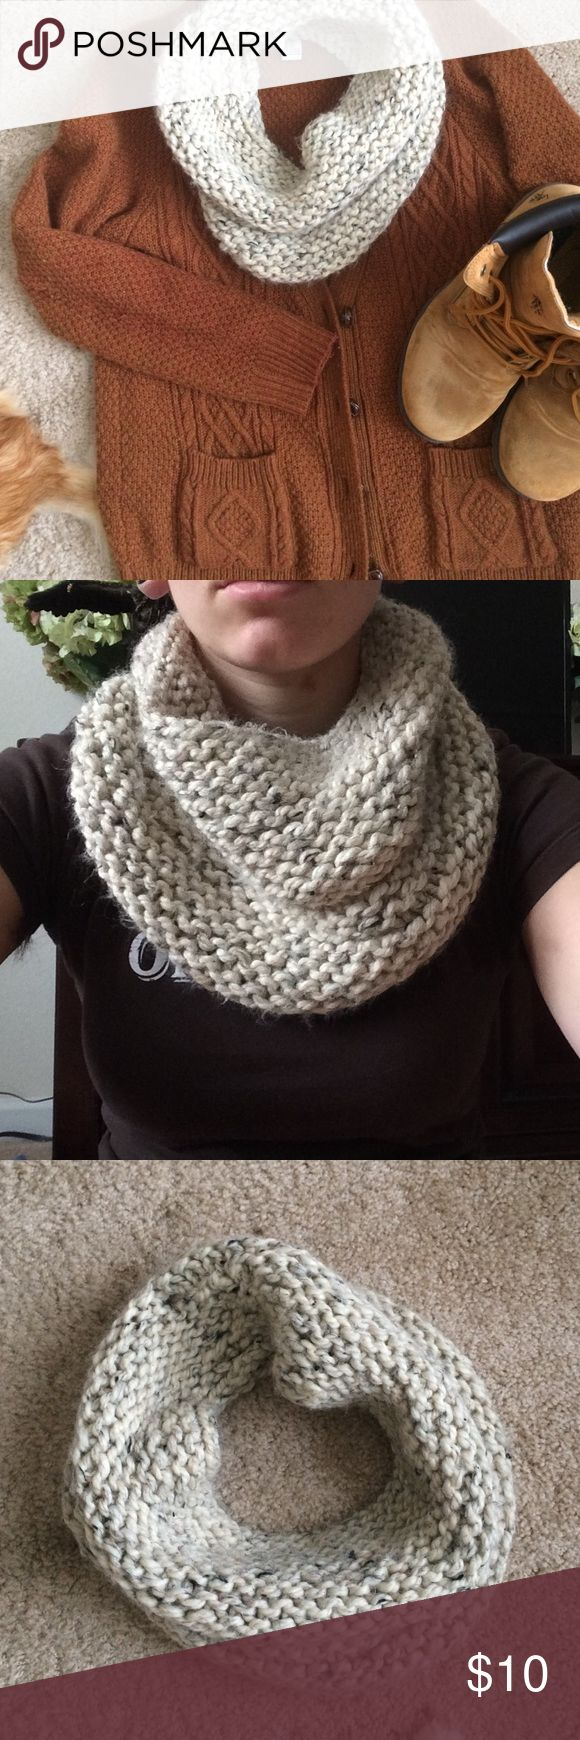 ✨5 for $15✨Chunky knitted cream cowl I knitted this cowl when I first started knitting so it's a little wonky in some places (see pictures) but it still looks super cute on!! Perfect for fall and winter with a cardigan and boots 💕 American Apparel Accessories Scarves & Wraps